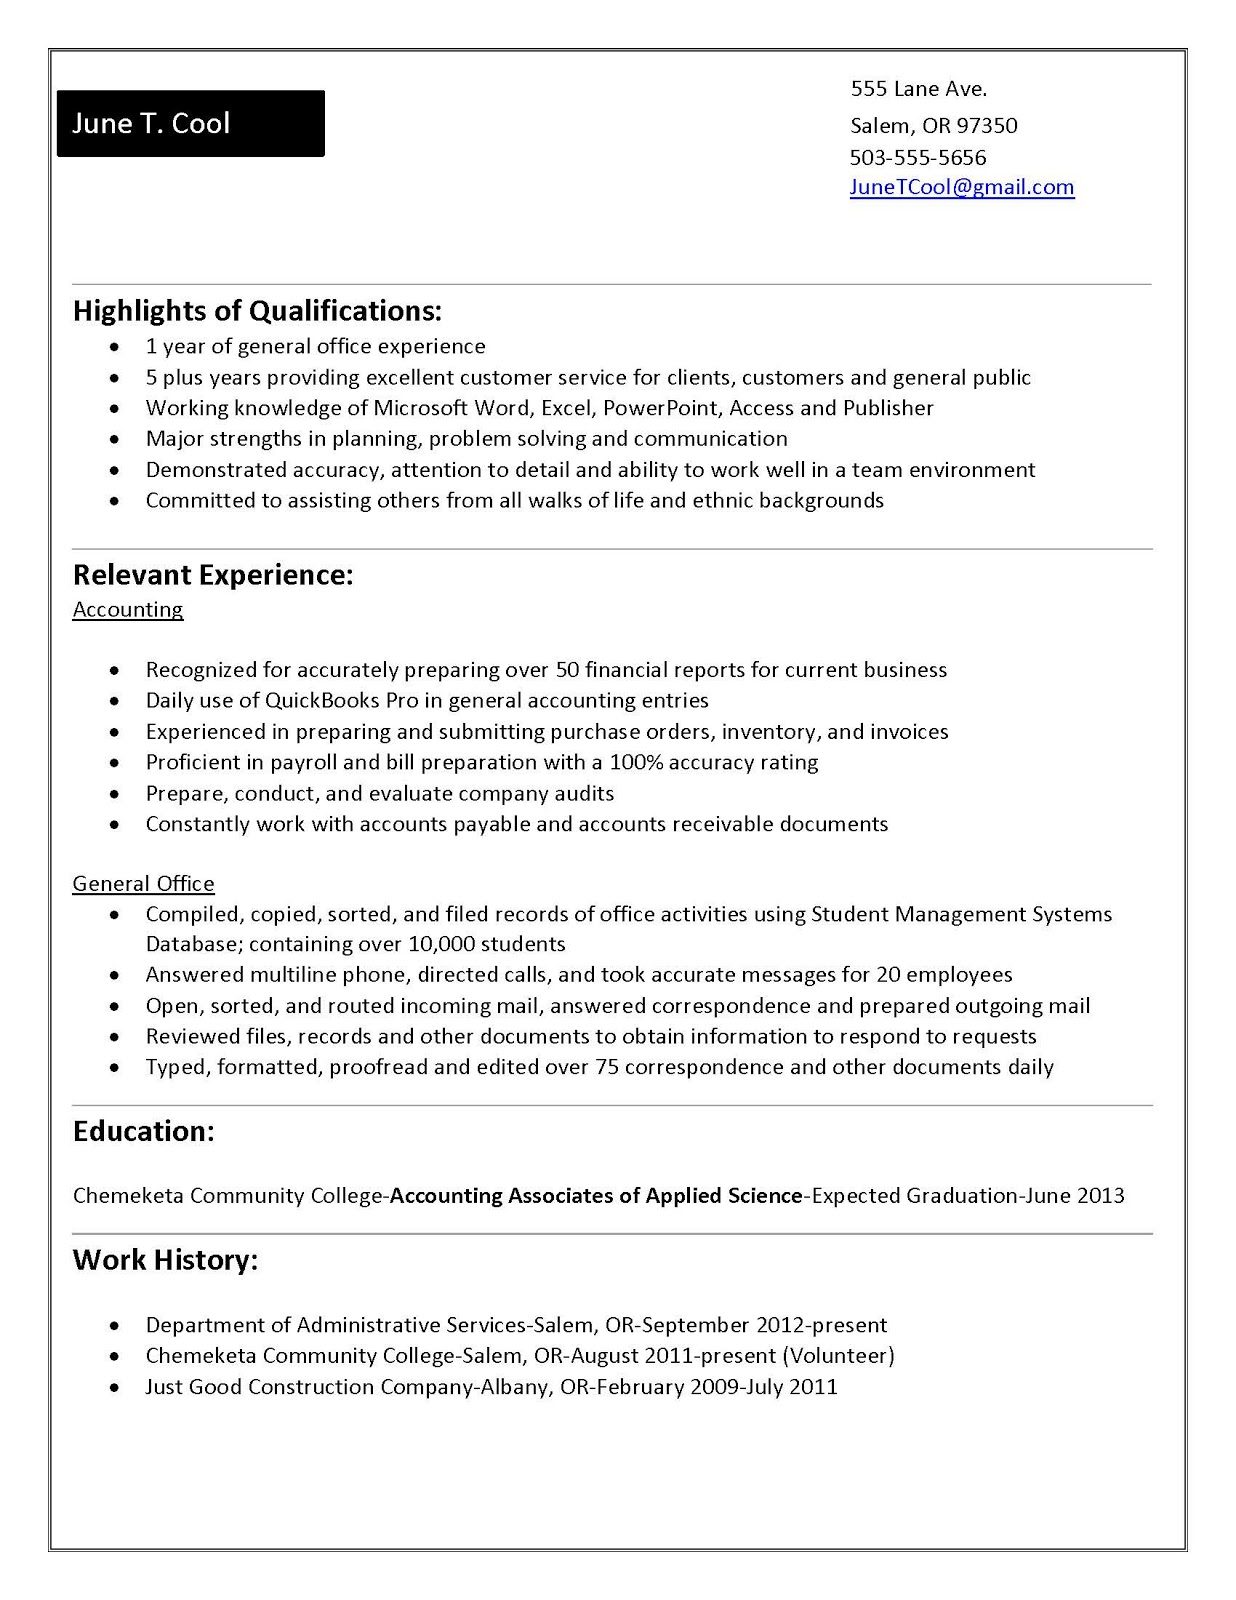 sample resume for a college student with no experience - Gidiye ...